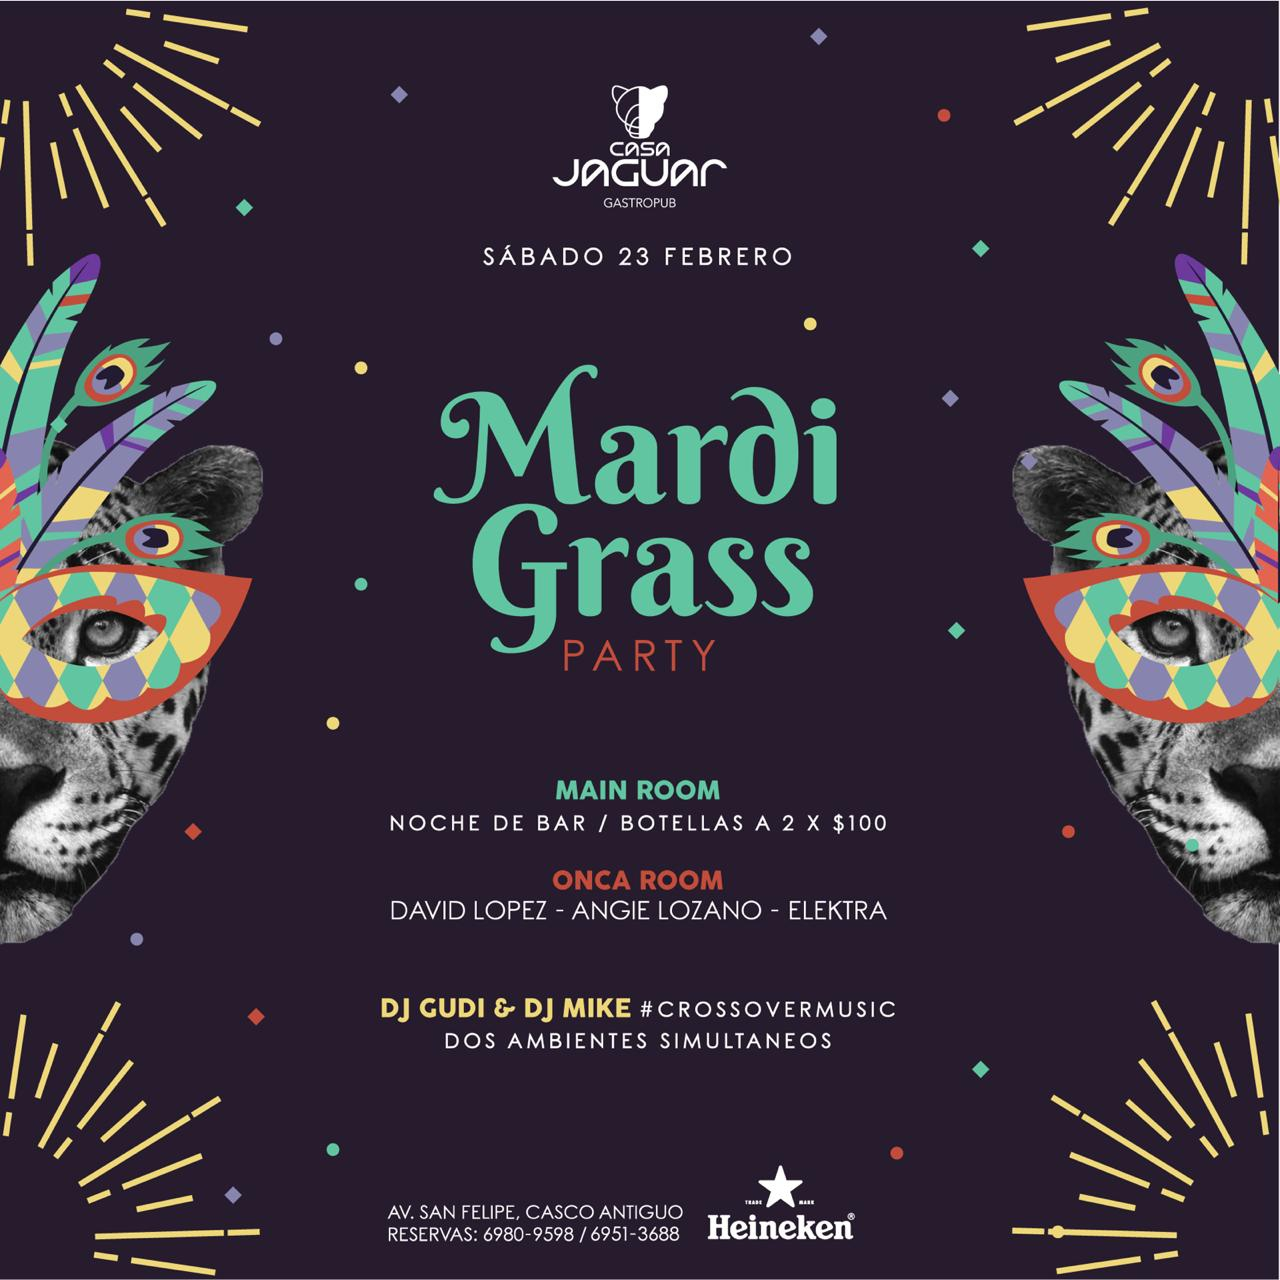 Mardi Grass Party